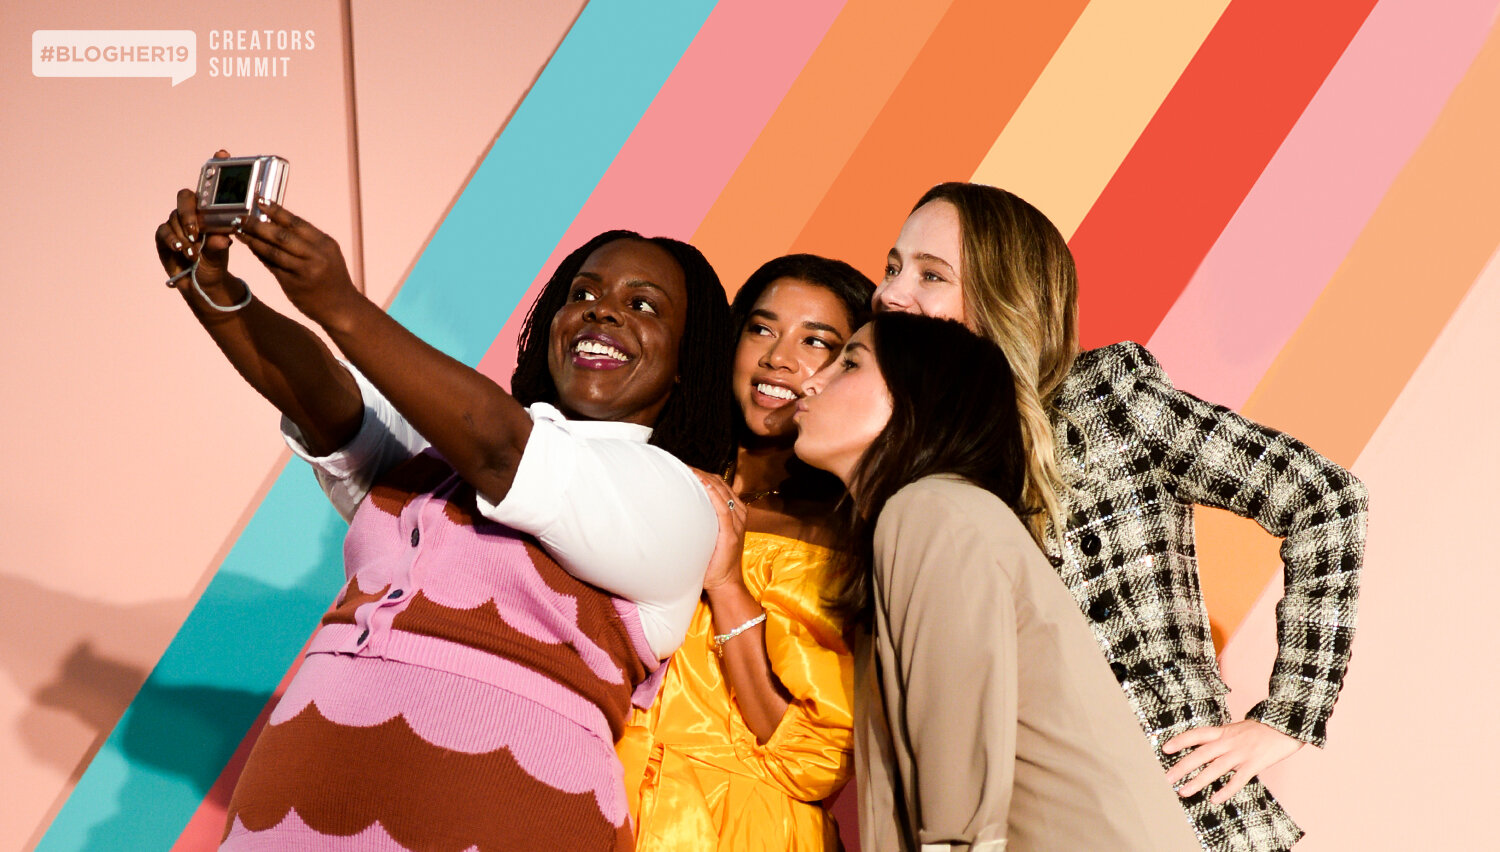 Thank you for attending #BlogHer19 Creators Summit - Couldn't make it this year? Keep reading for some of our favorite speaker moments!